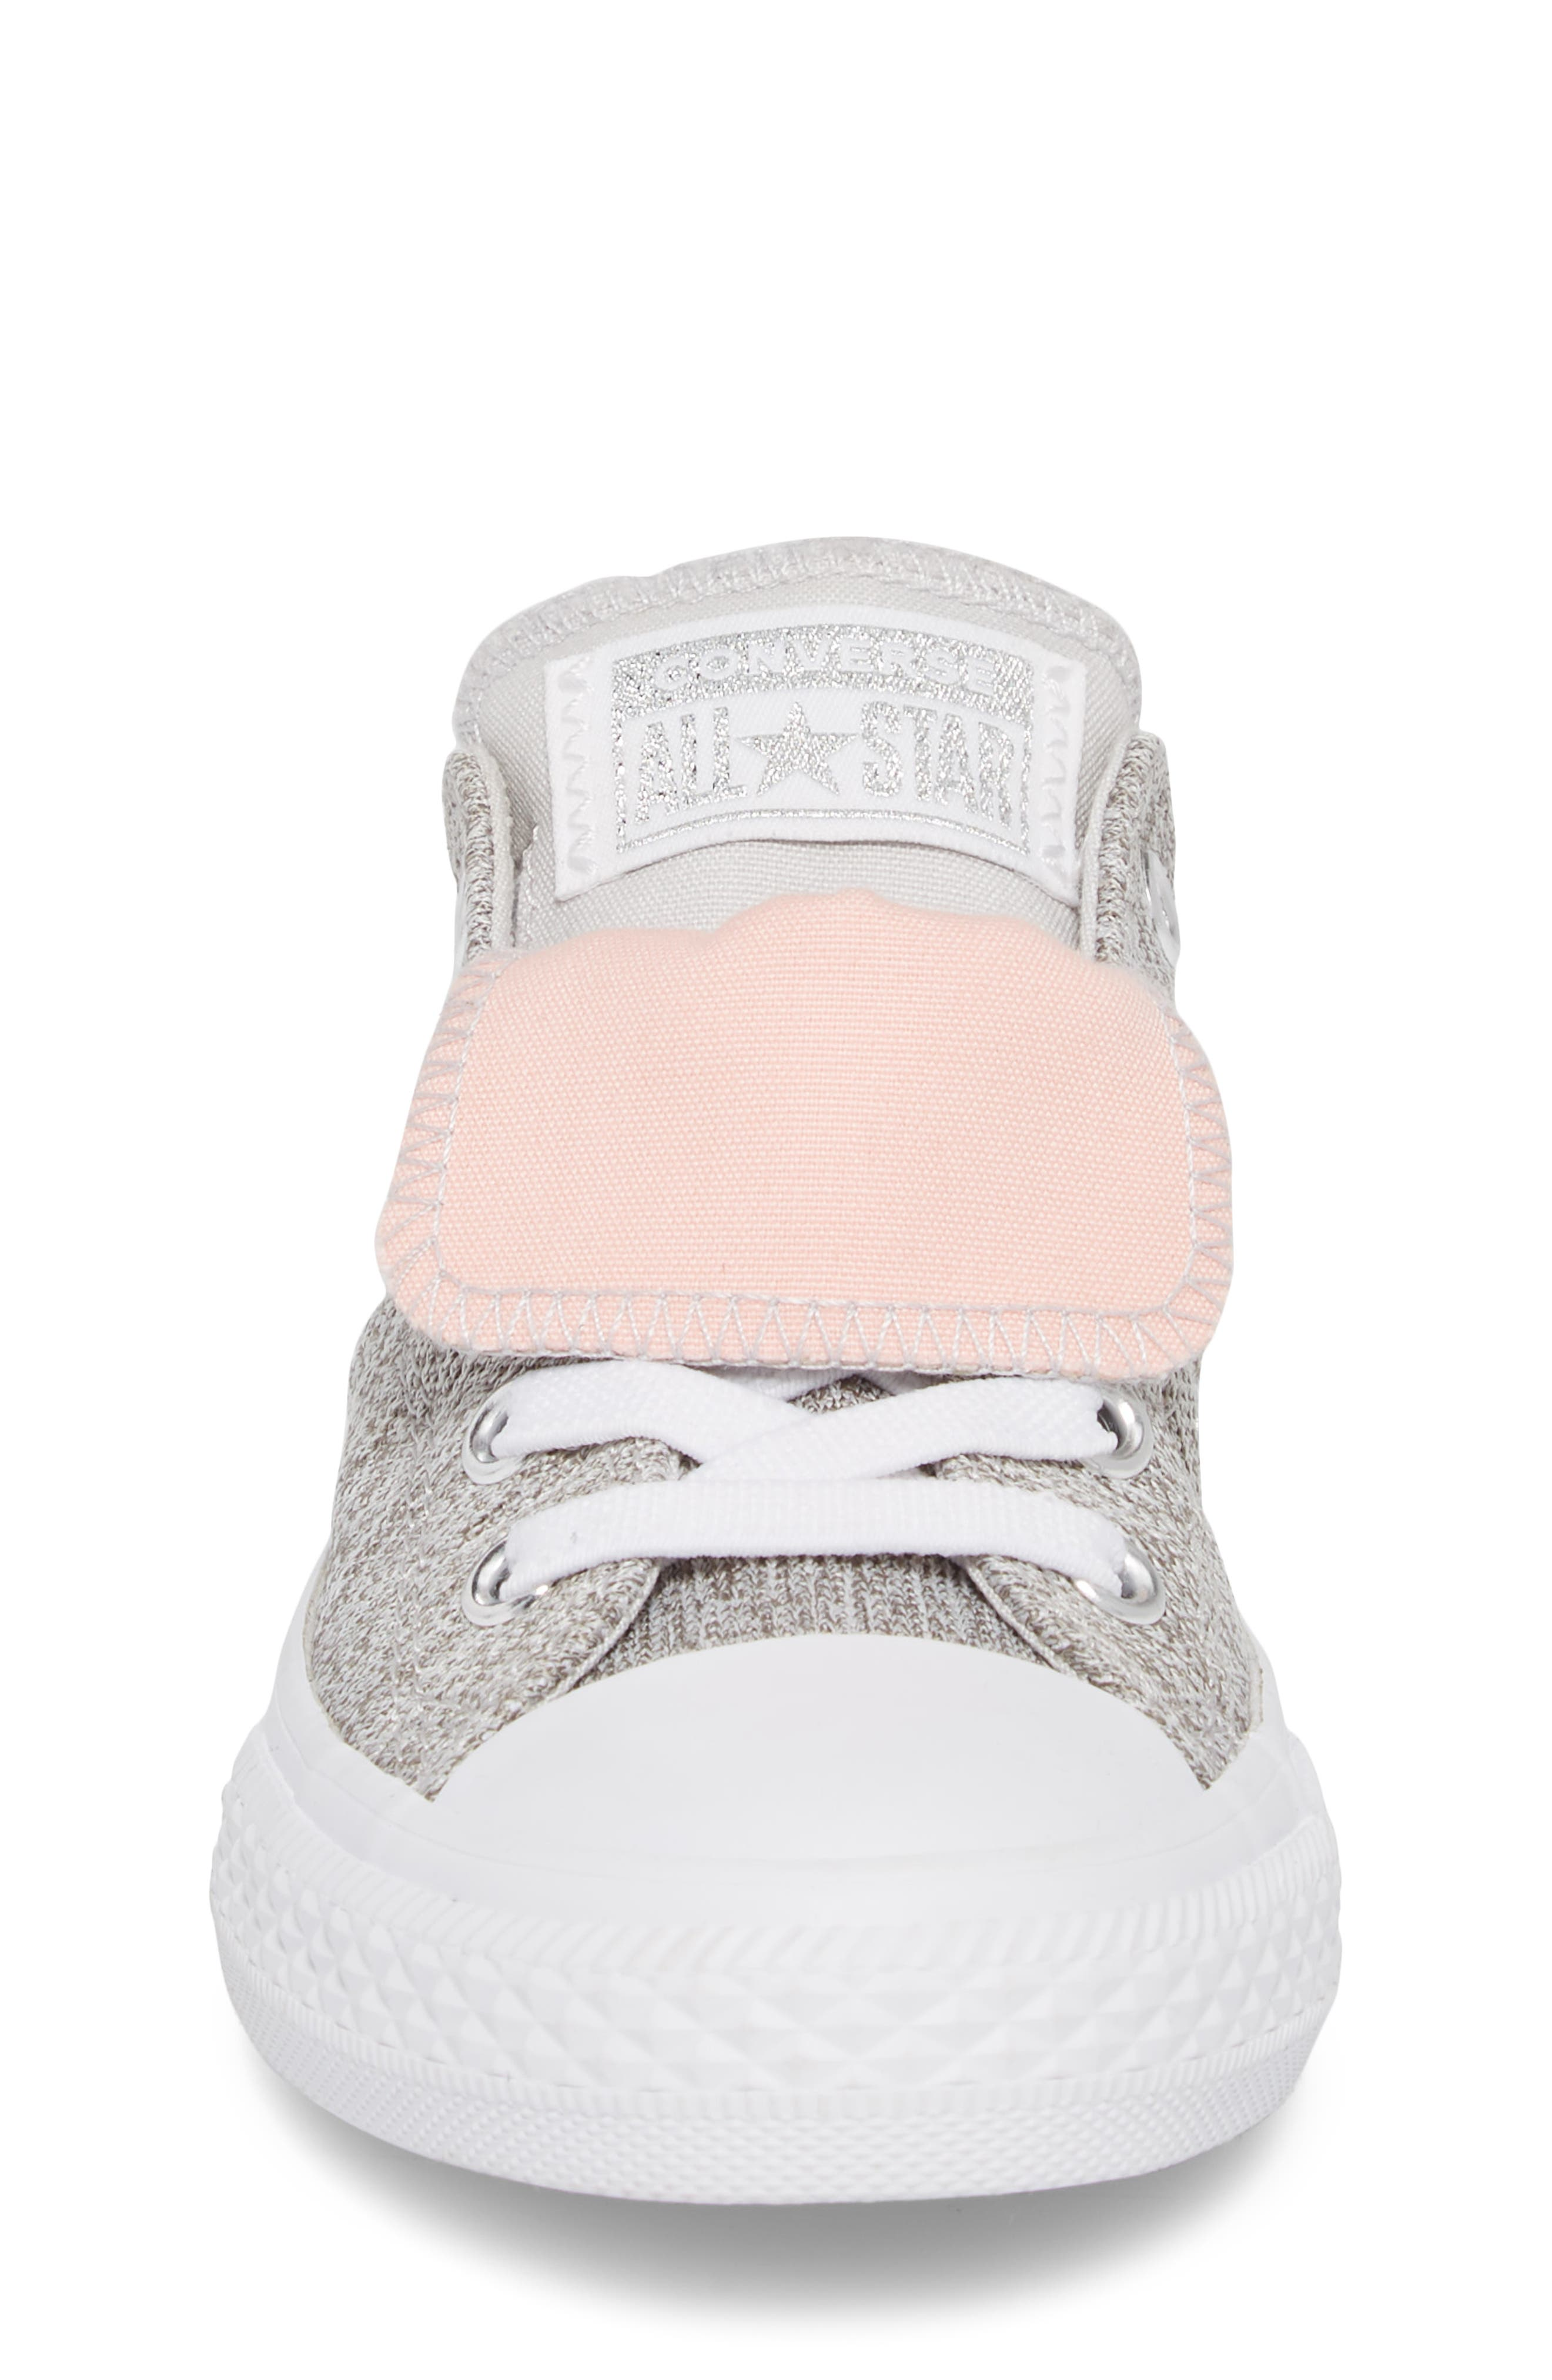 Chuck Taylor<sup>®</sup> All Star<sup>®</sup> Maddie Double Tongue Sneaker,                             Alternate thumbnail 4, color,                             050